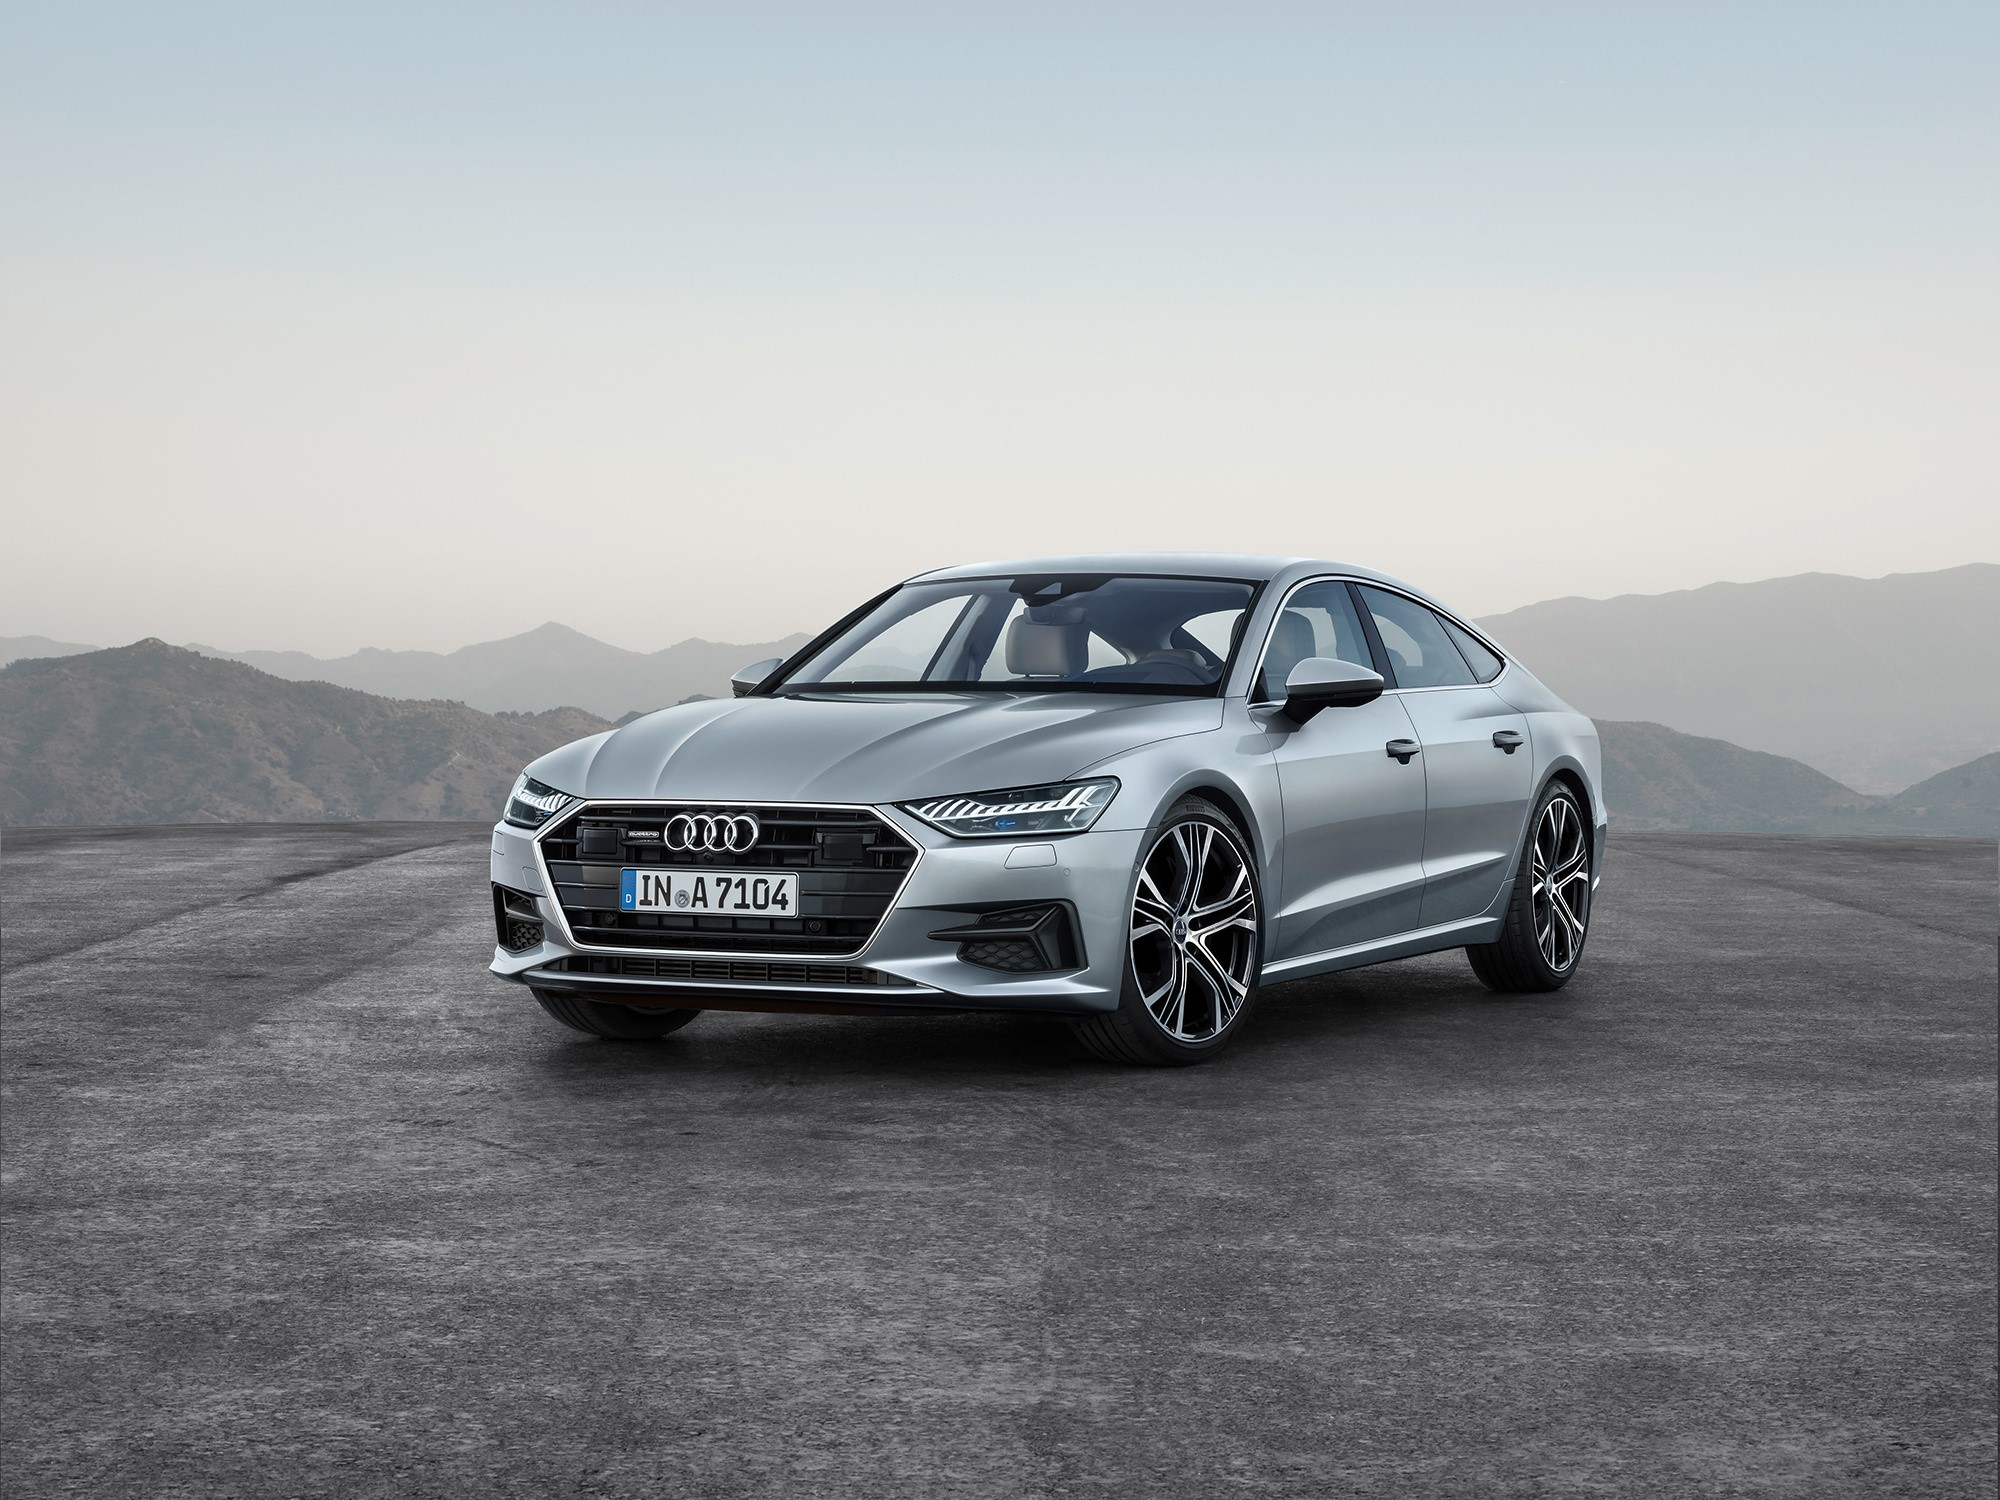 Audi A7 Computer Wallpapers